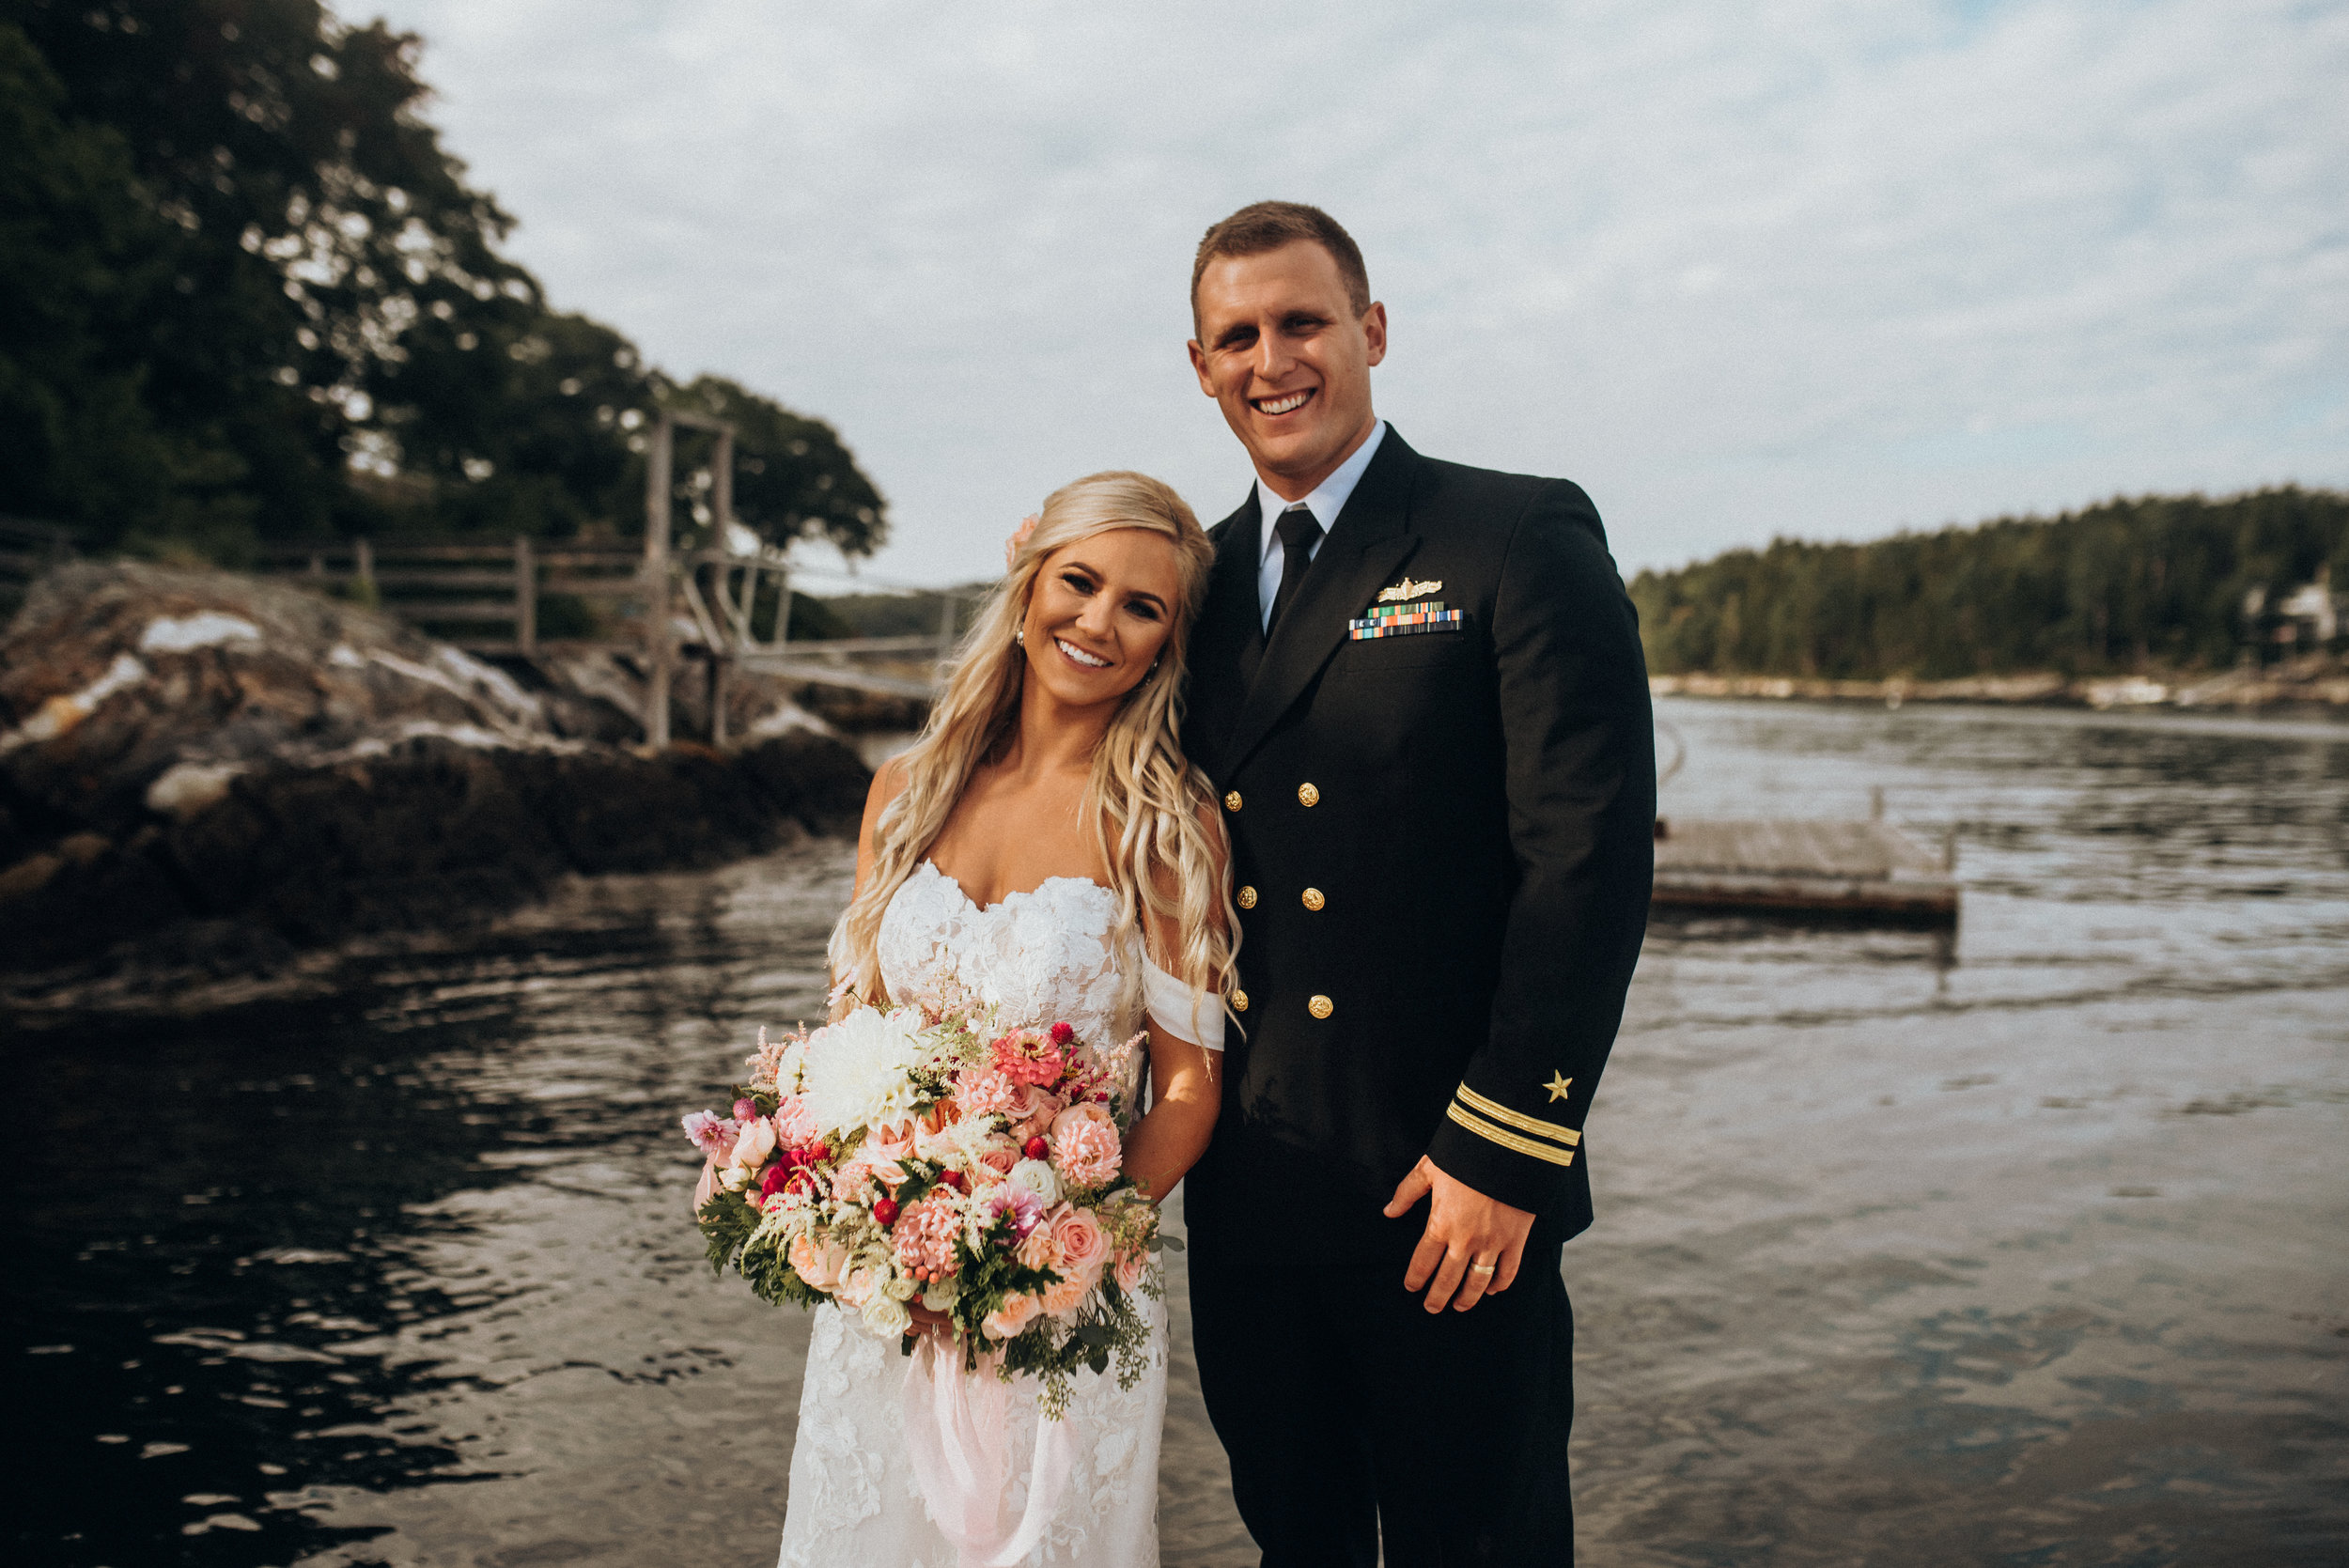 Hope & Christopher - We used Anika at Bad Rabbit Flowers for my daughter's wedding on September 15th at Grey Havens Inn, Georgetown, ME. I can't tell you how absolutely gorgeous the flowers were. EVERYONE had a